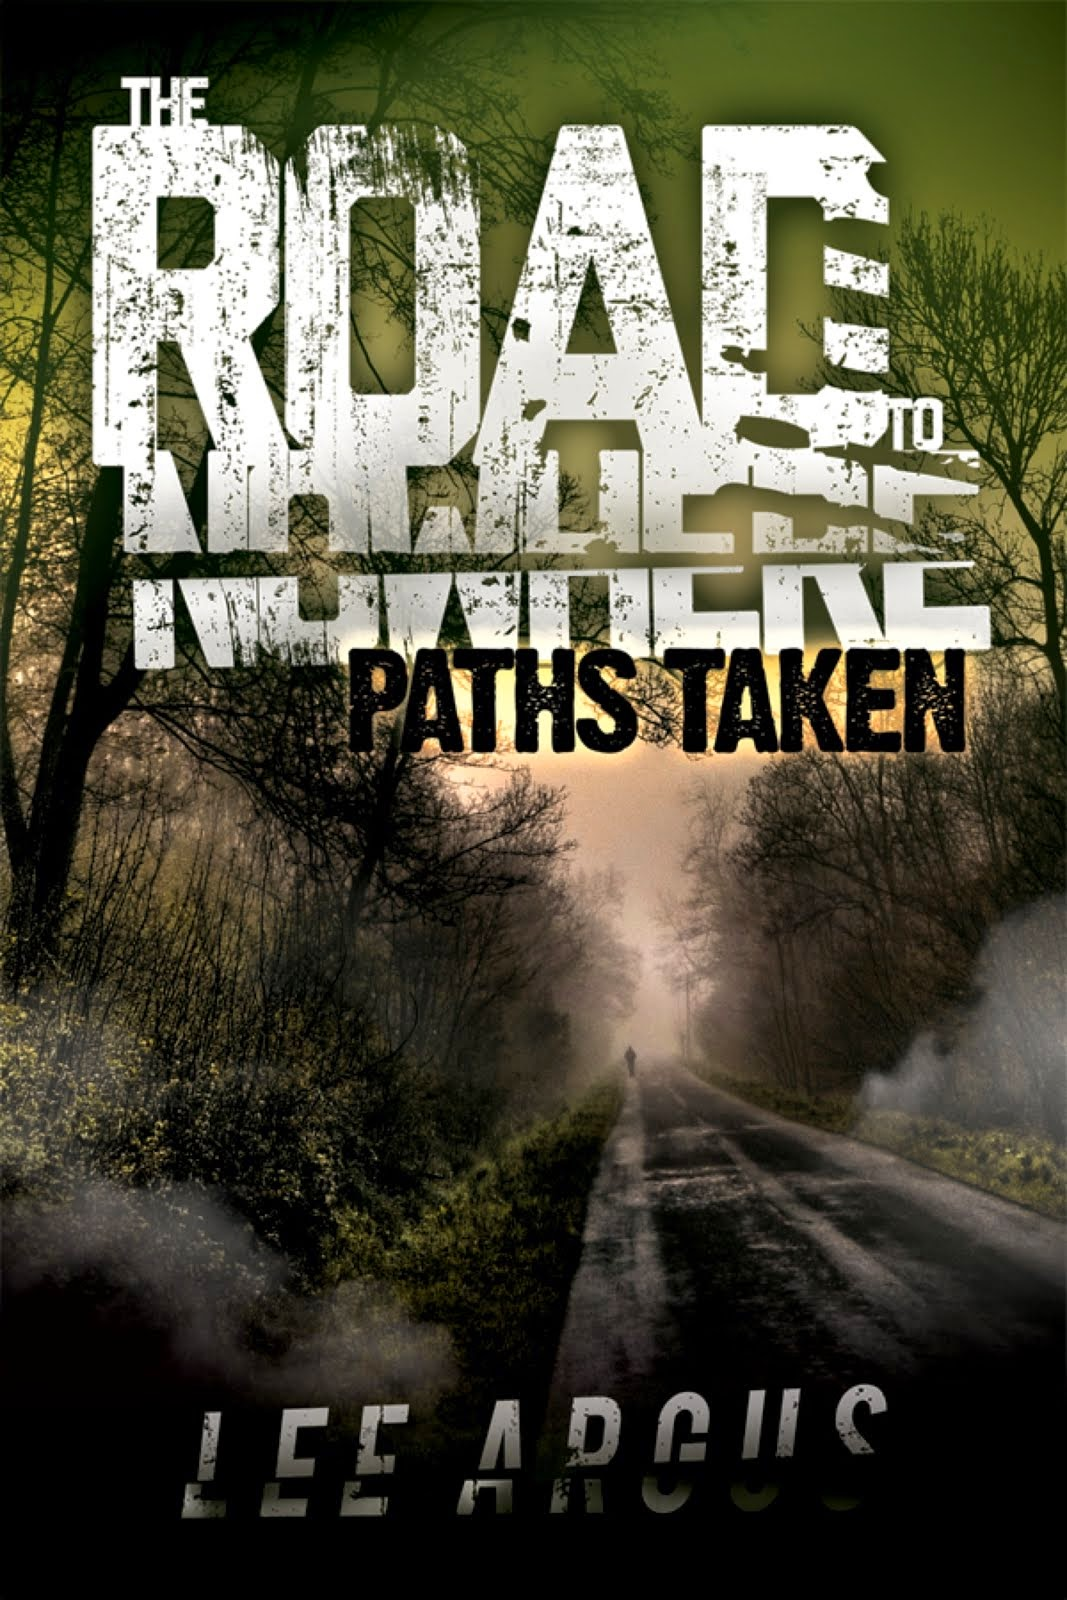 The Road to Nowhere: Paths Taken (Amazon)